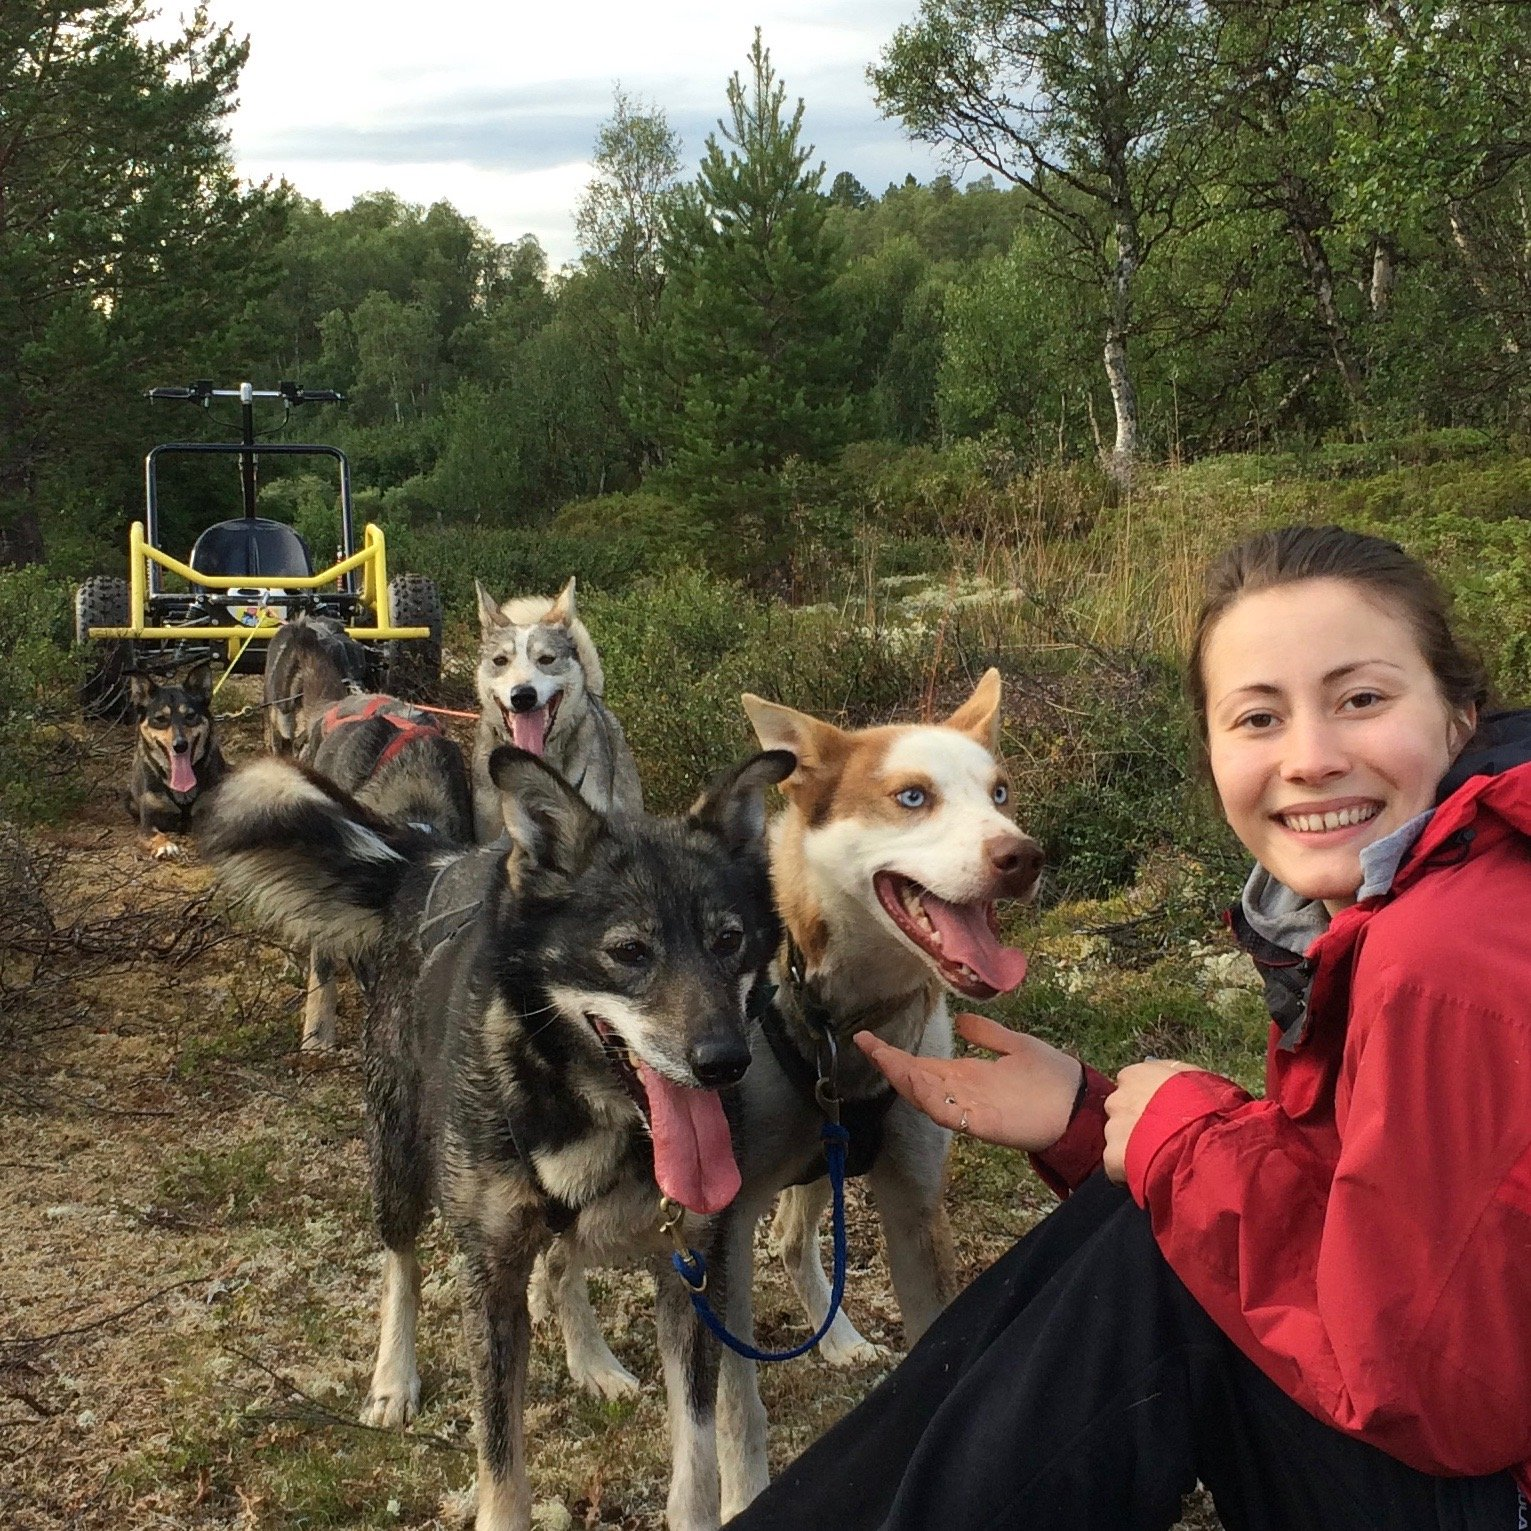 Summer activities huskies dogs hunde cart_tour